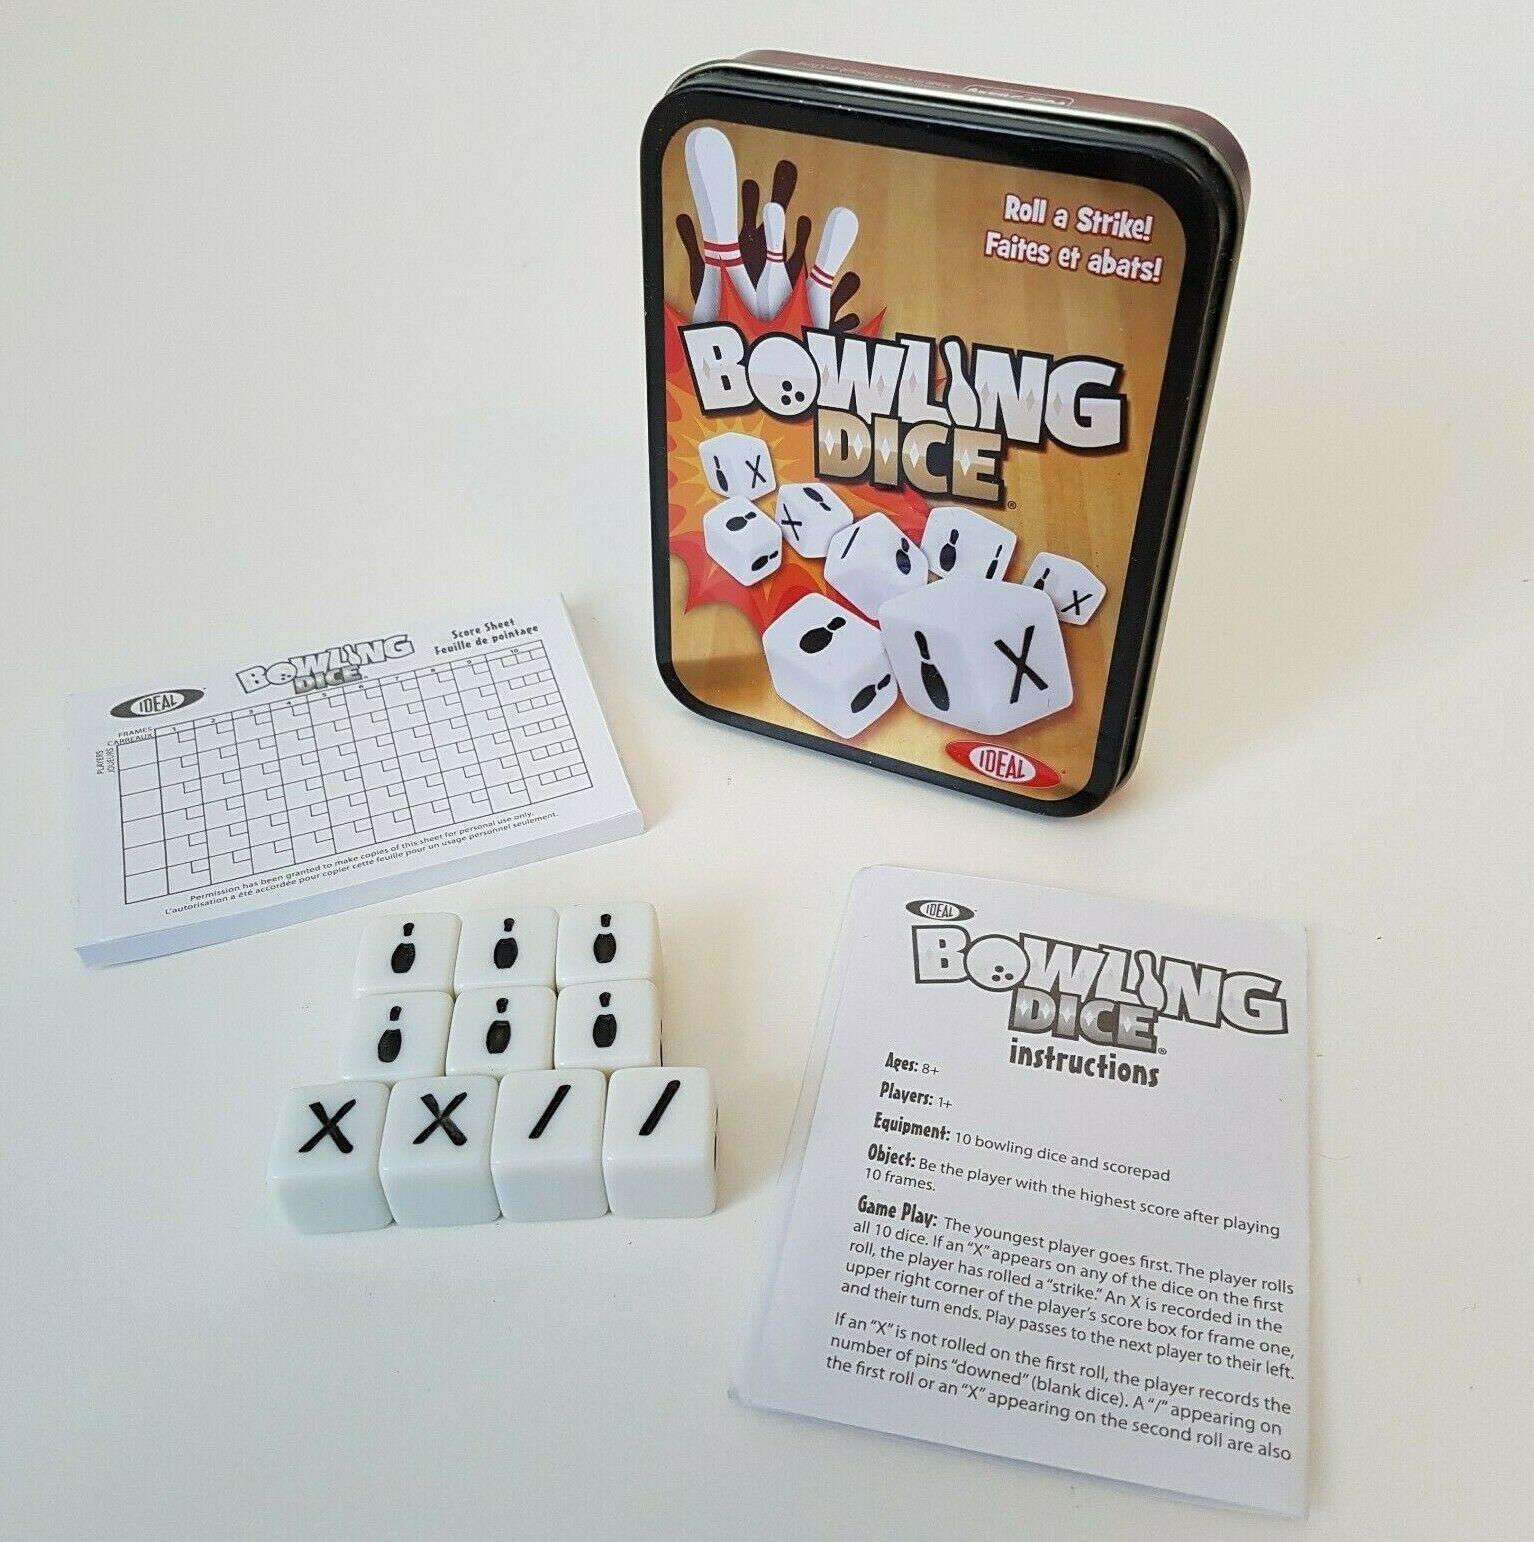 Ideal Bowling Dice Game Roll A Strike In Tin Metal Case Container Complete Ebay In 2020 Favorite Board Games Personalized Stocking Stuffers Ebay